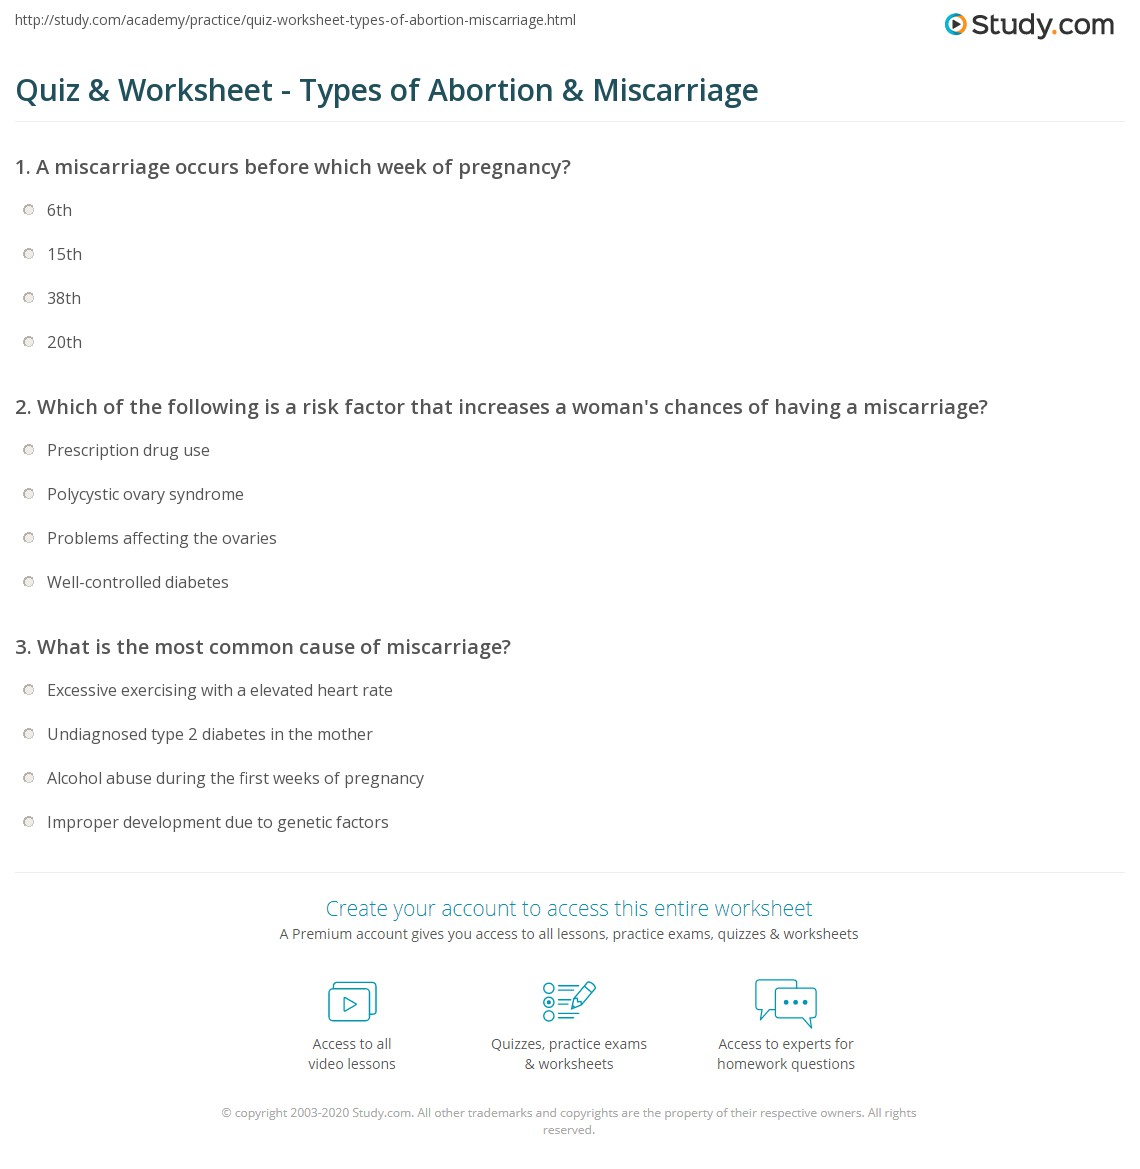 Quiz & Worksheet - Types of Abortion & Miscarriage | Study com